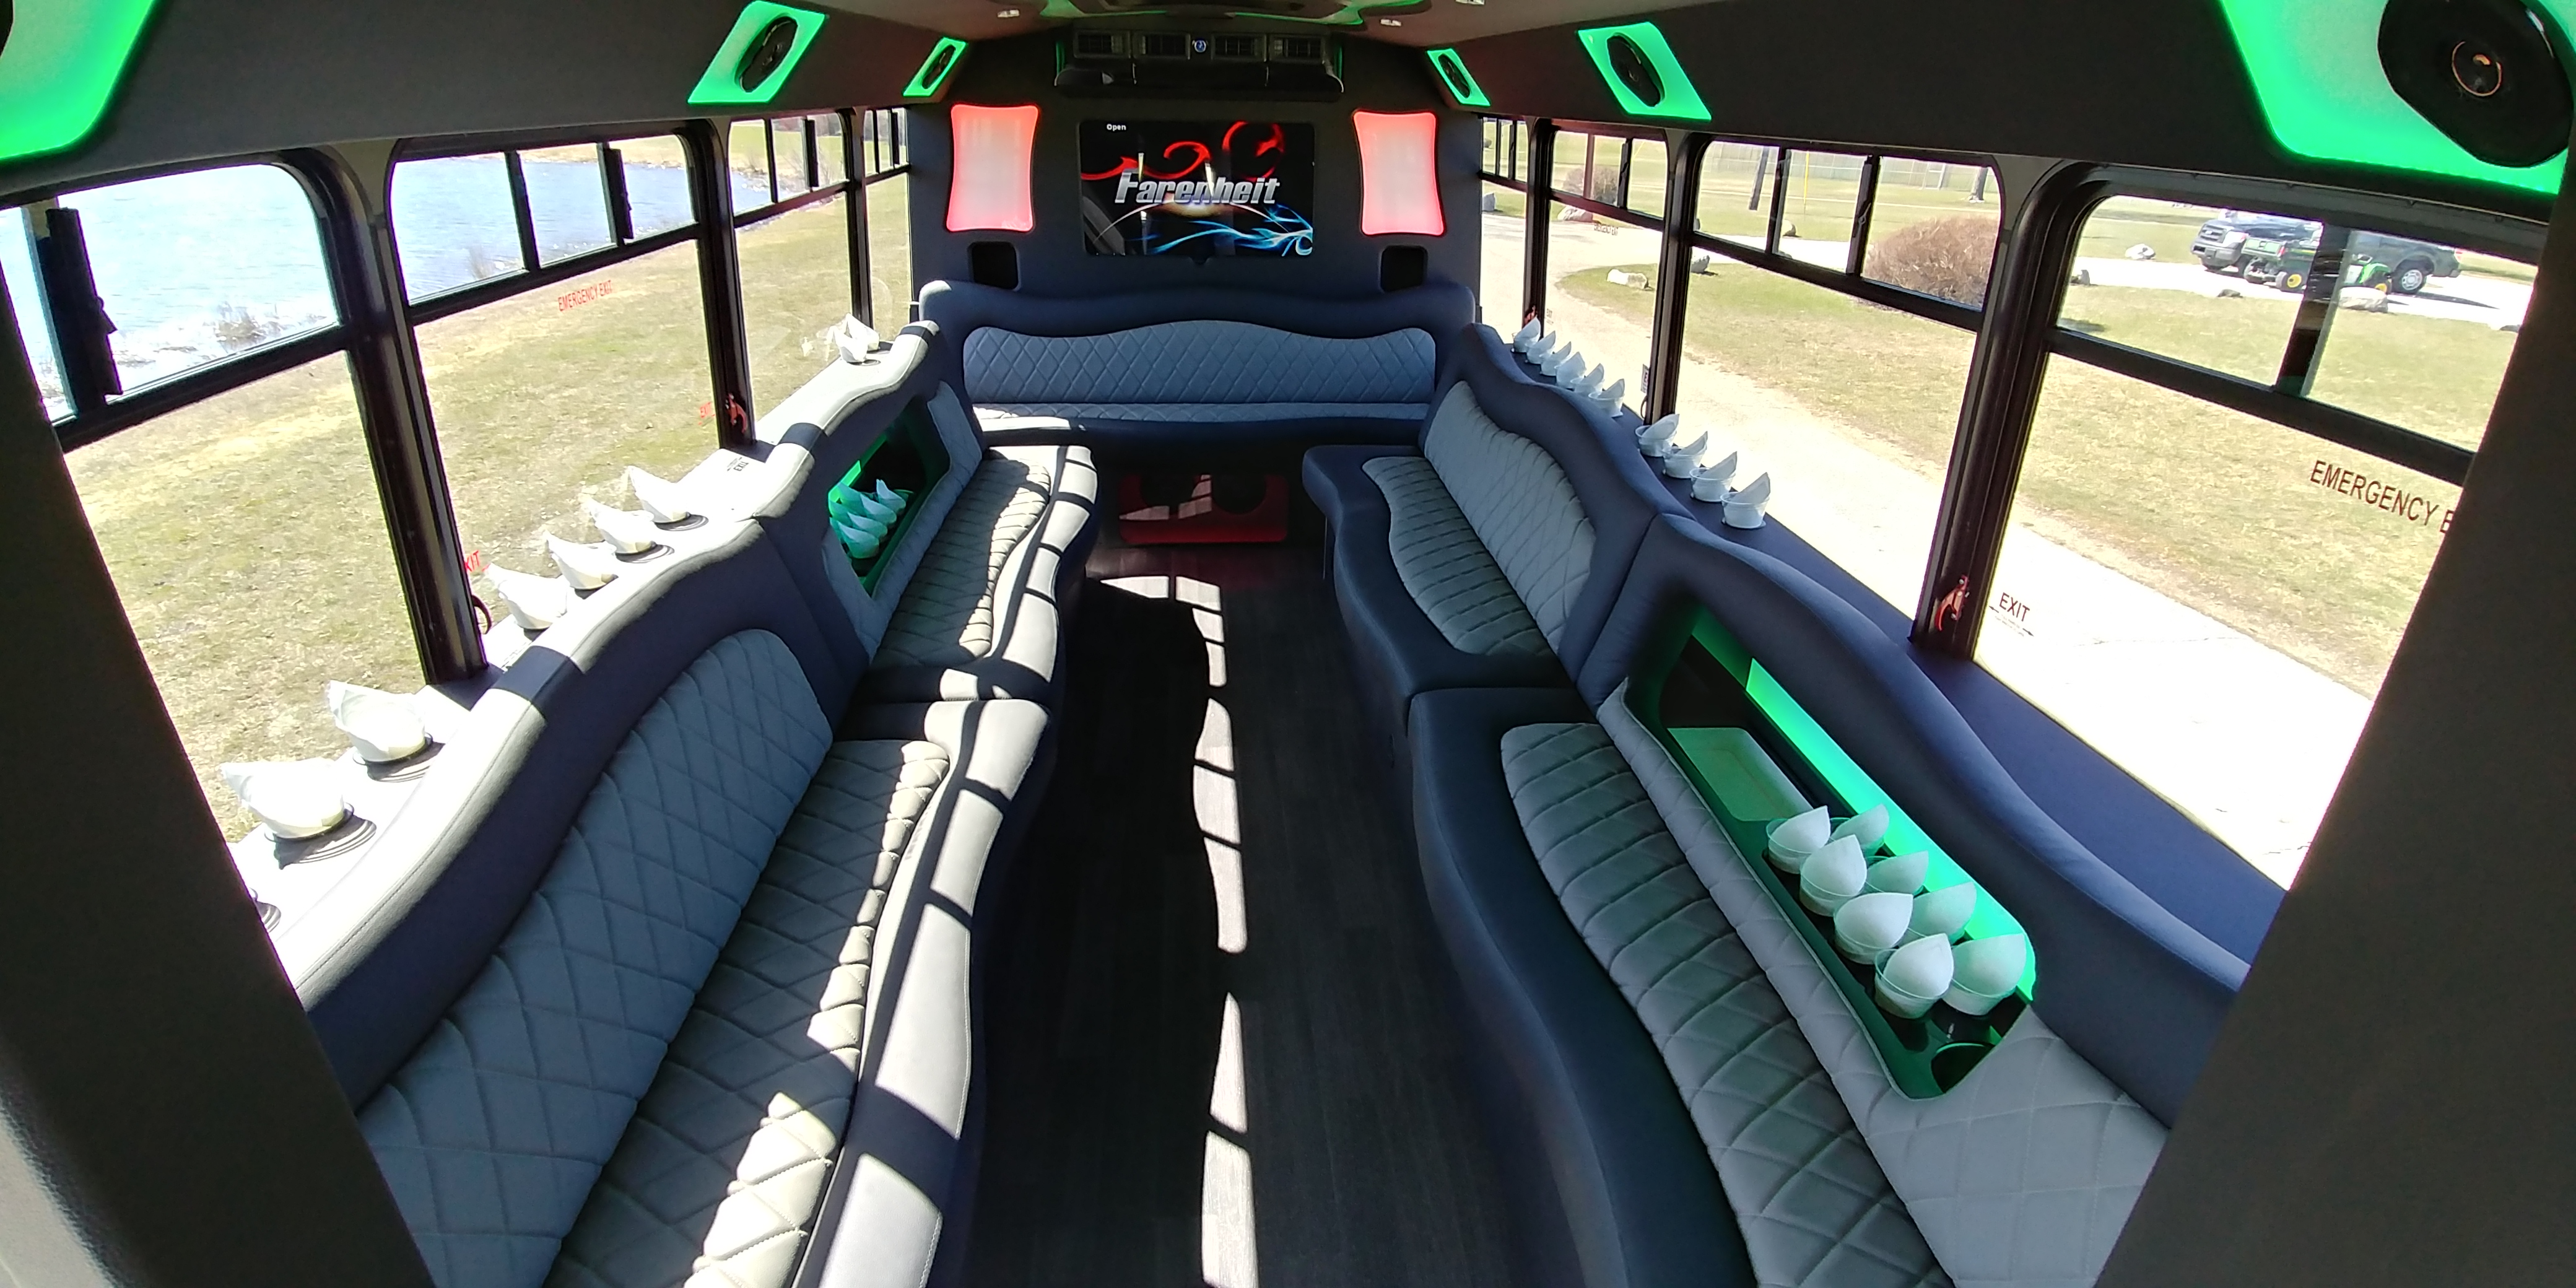 18 Passenger Luxury Limo Bus Interior 2